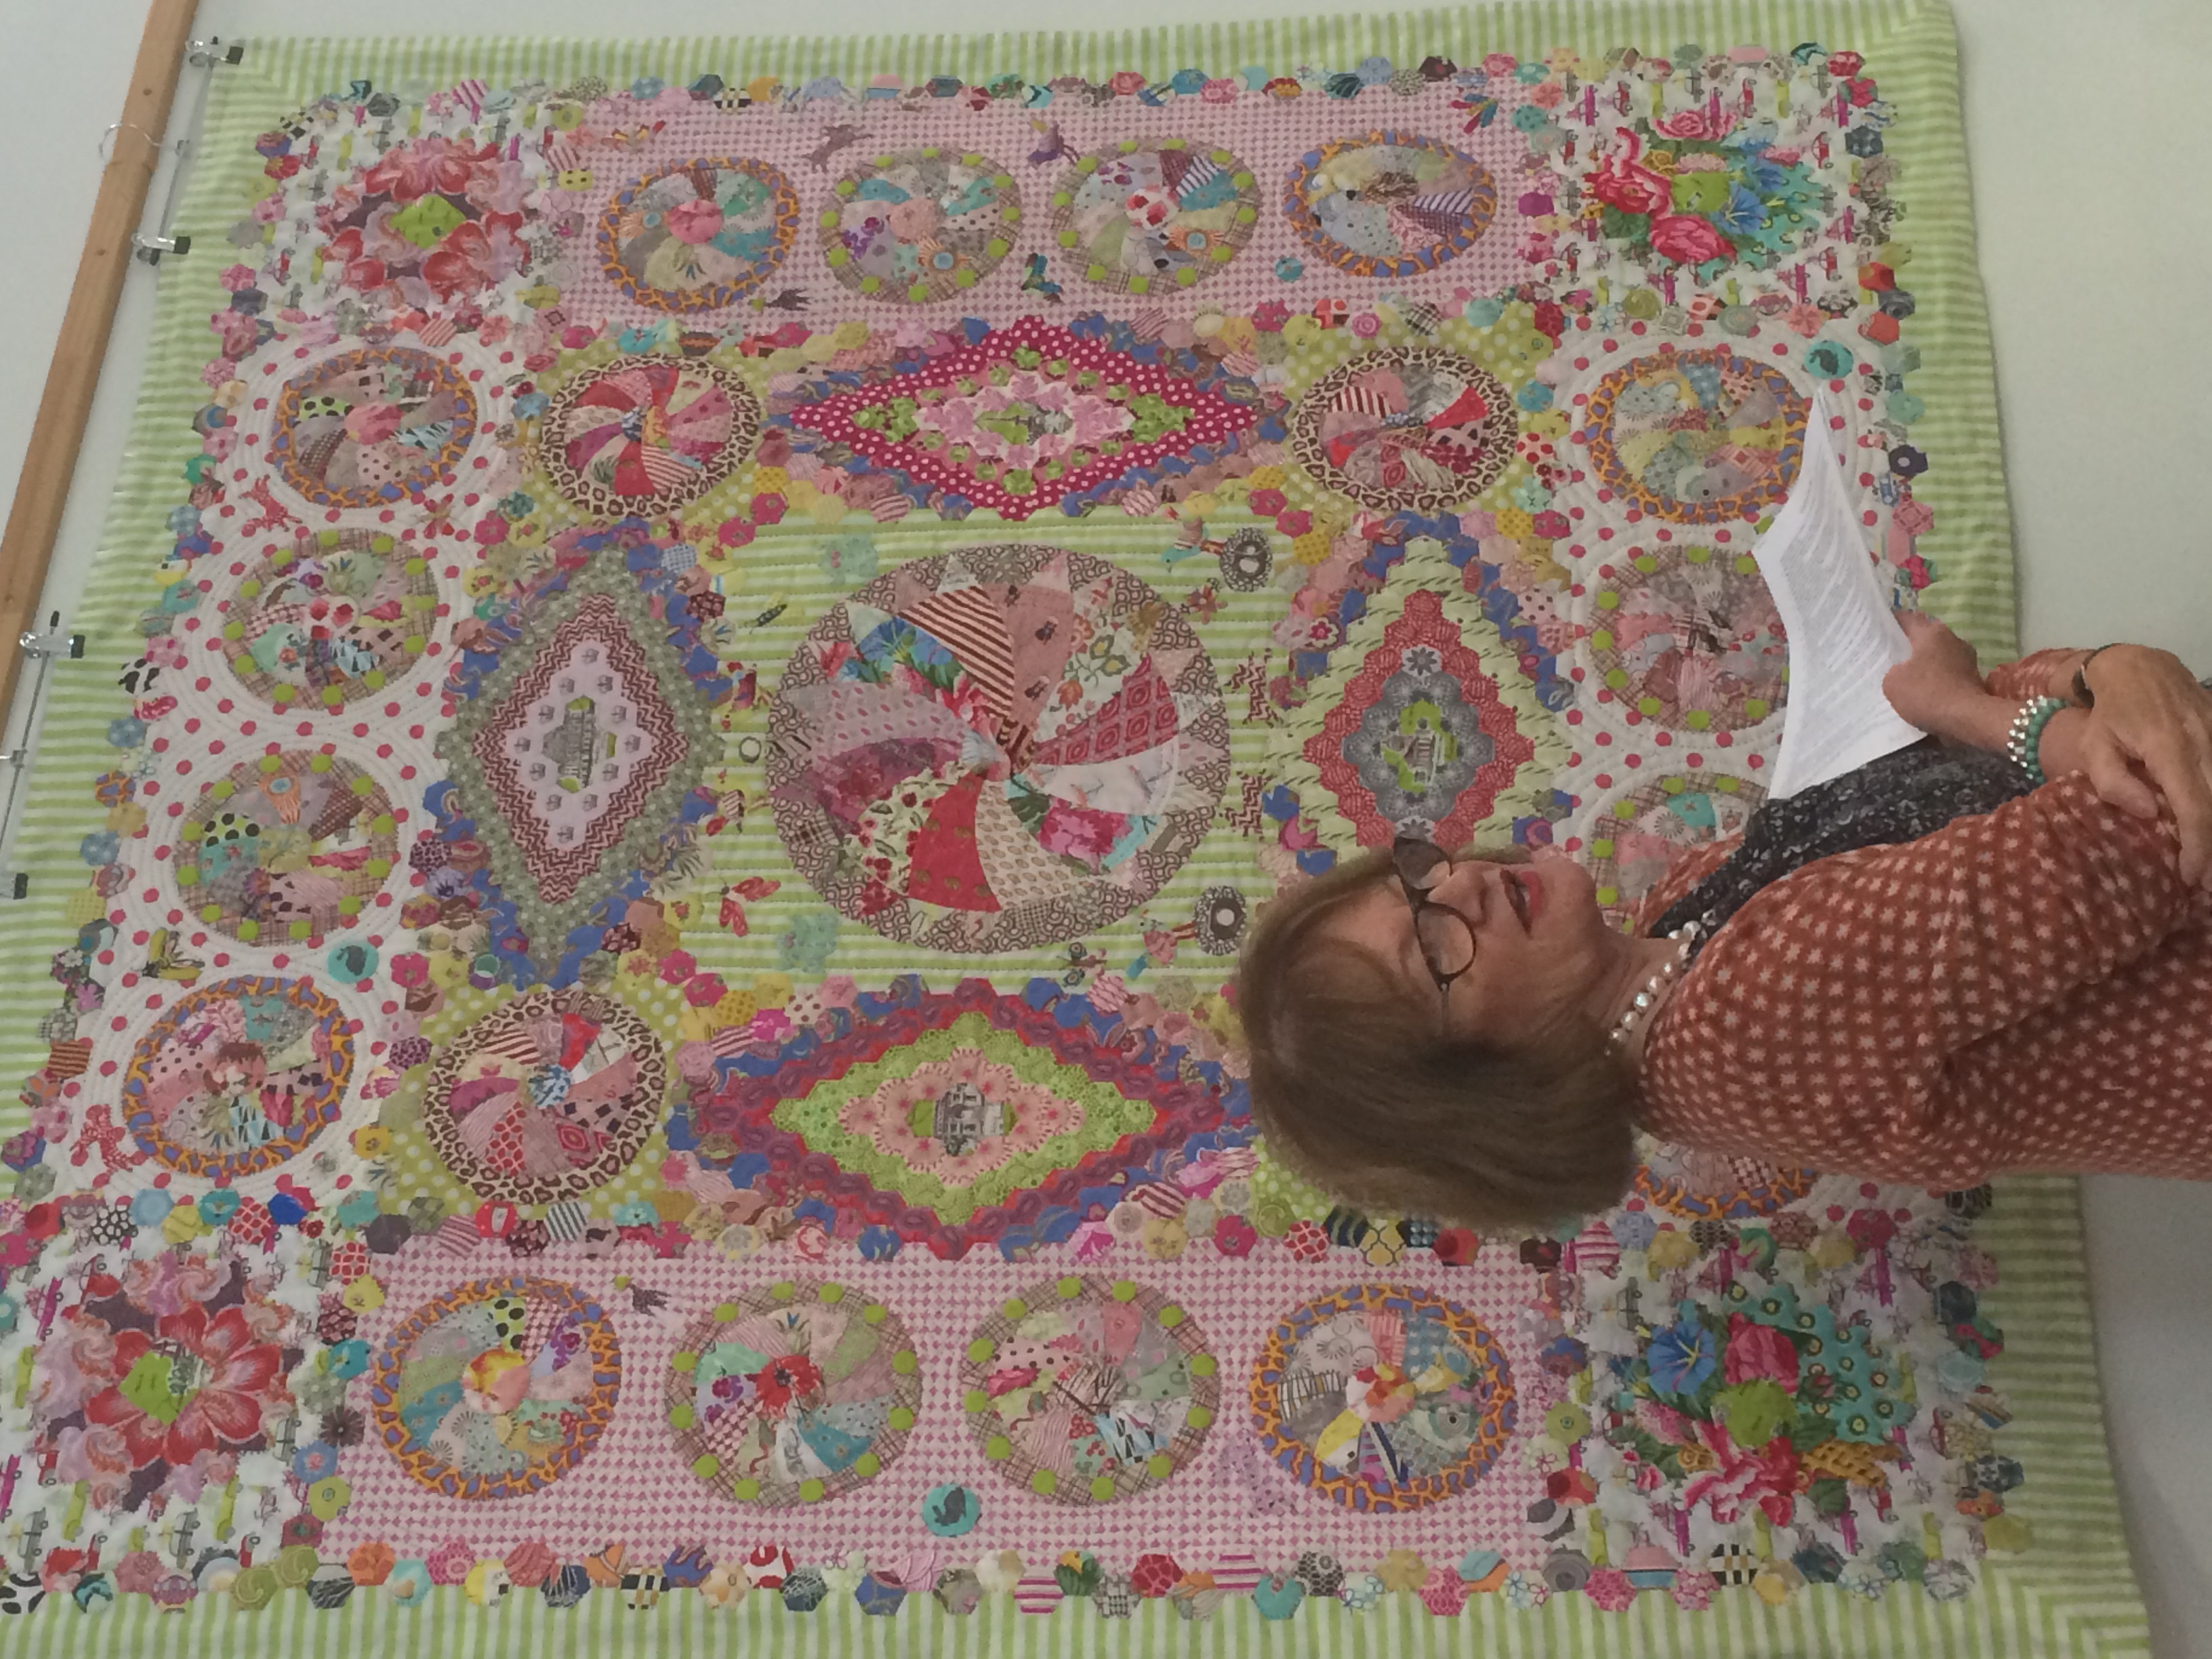 The 'Going Green' quilt, and Margaret taking us through the details.